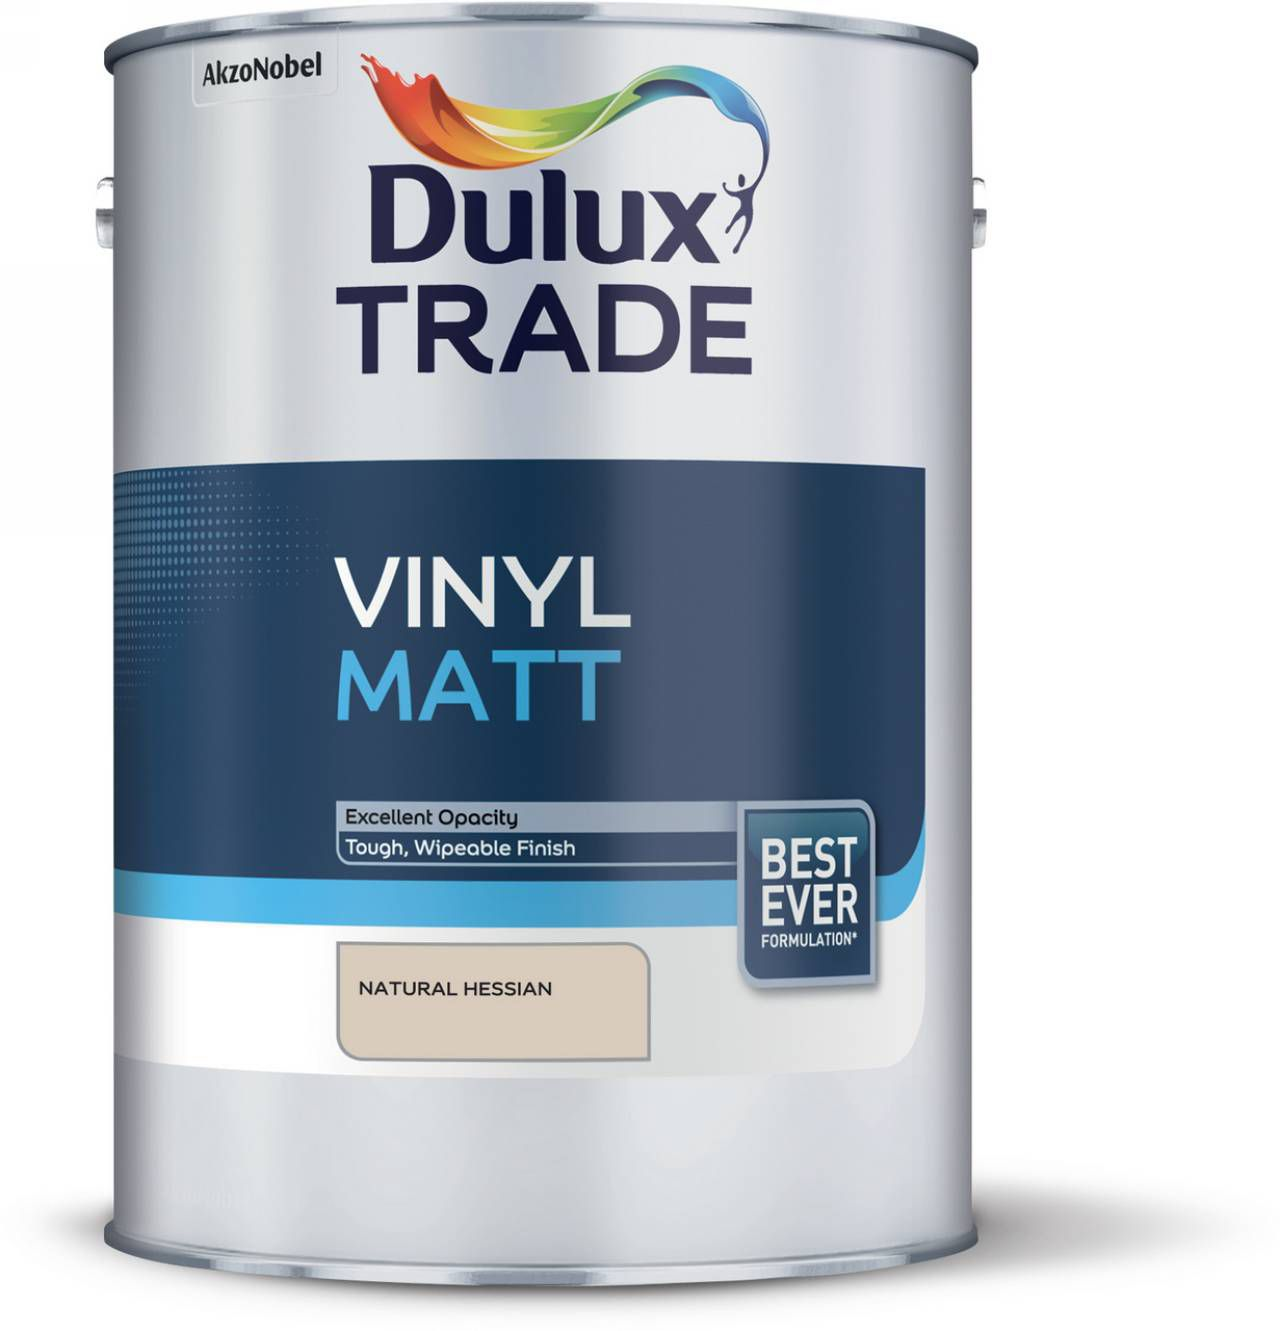 Dulux Trade Natural Hessian Matt Vinyl Paint 5l